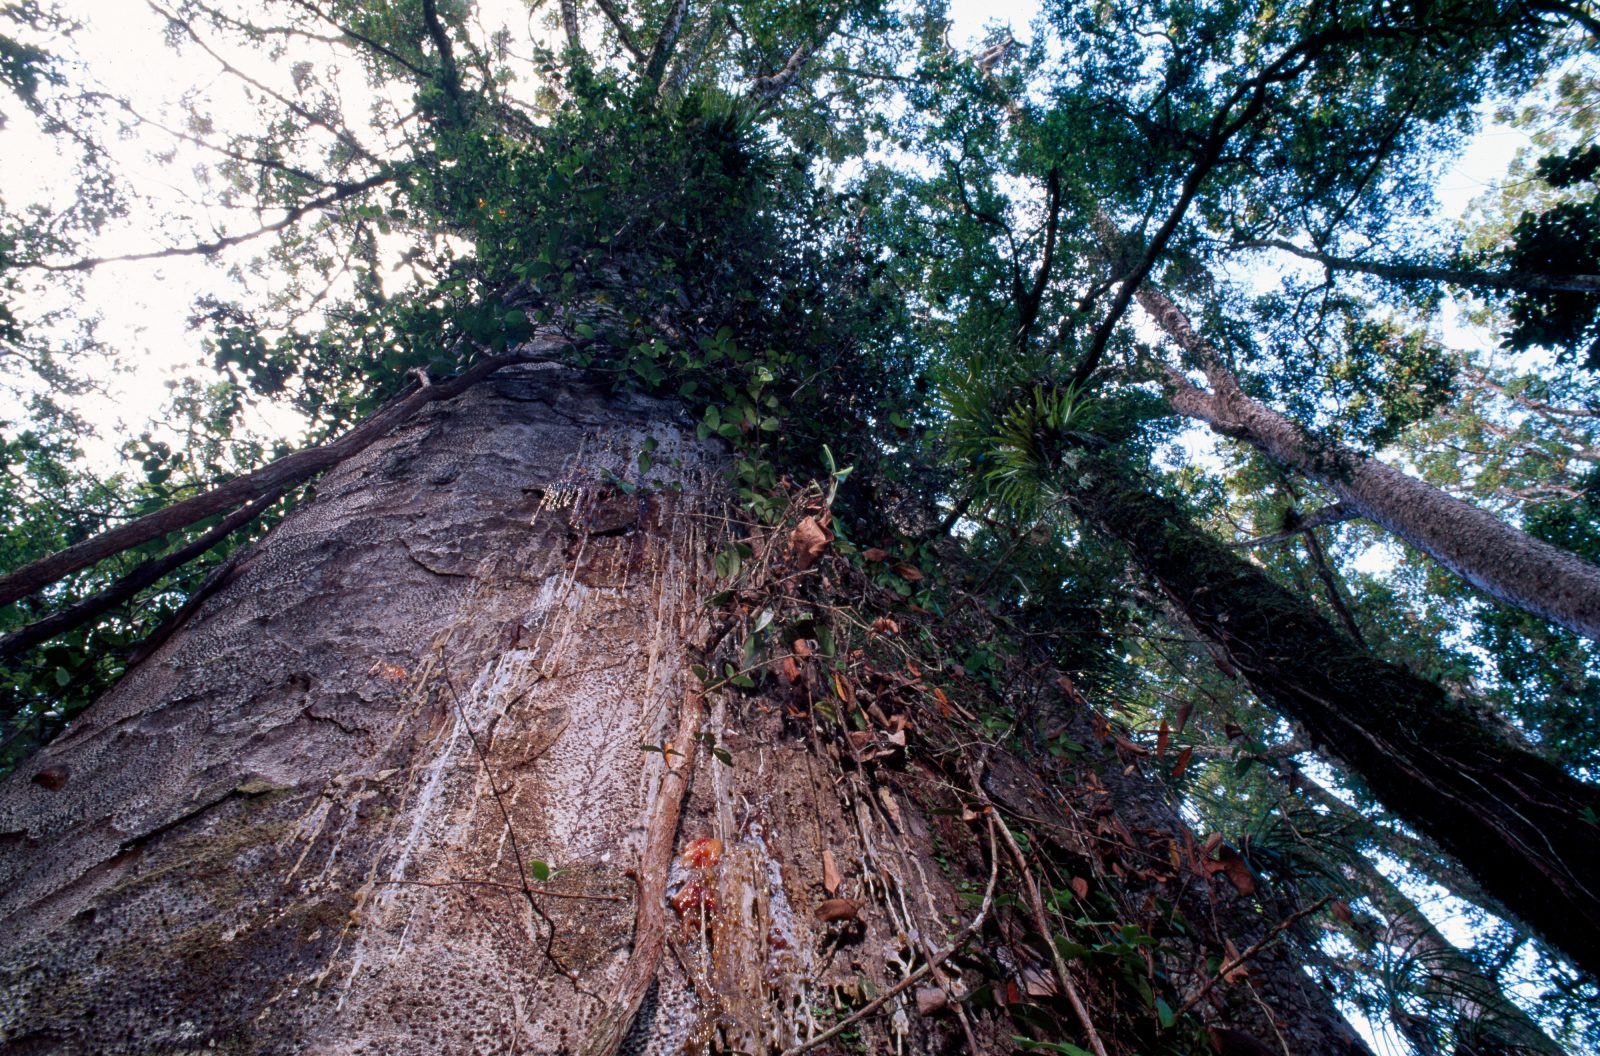 All conifers produce resins, but kauri is one of the most prodigious bleeders. These mammoth trees, which can live for a thousand years or more. produce resin in response to injury or attack by other organisms. Over time, the trickles of resin seeping out of the tree can form huge lumps of solidified gum, some of which have weighed as much as 250kg.